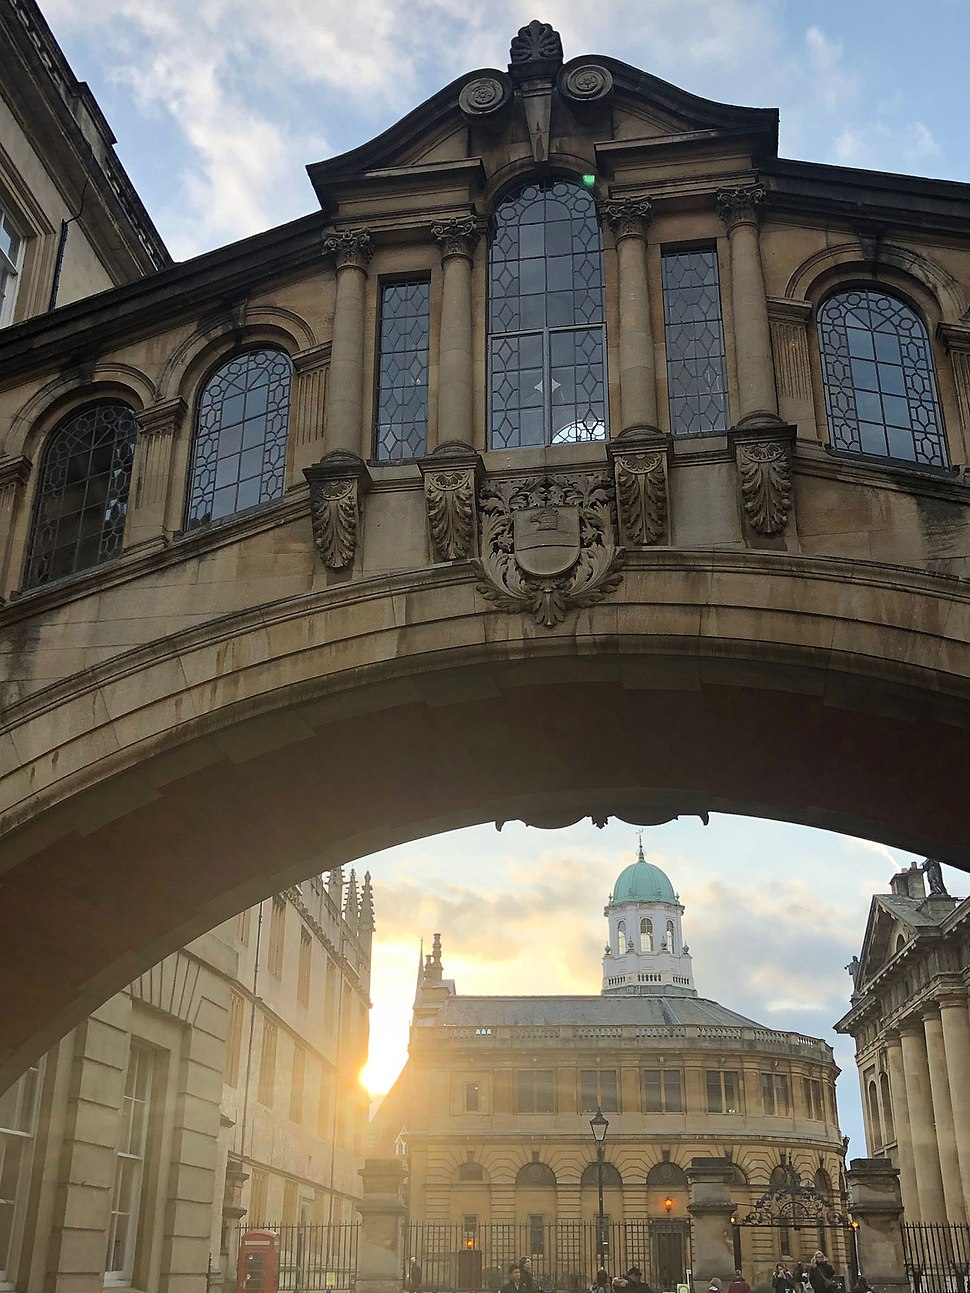 Bridge of Sighs and Sheldonian Theatre, Oxford